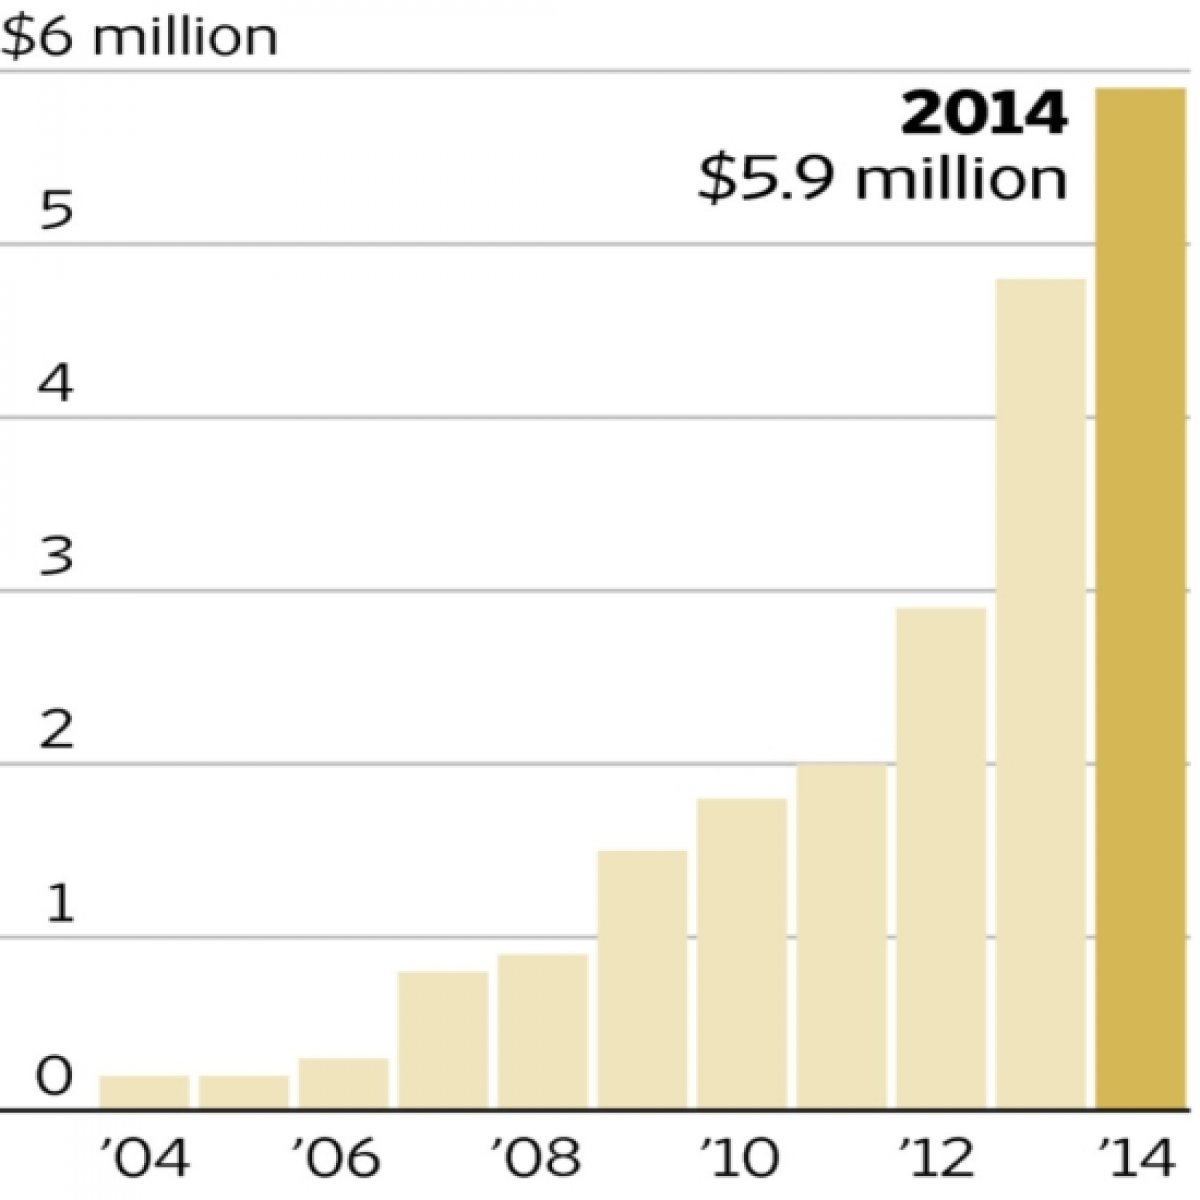 Value of US potato export to Vietnam in USD, based on US Census Bureau Trade Data (Courtesy The Wall Street Journal)